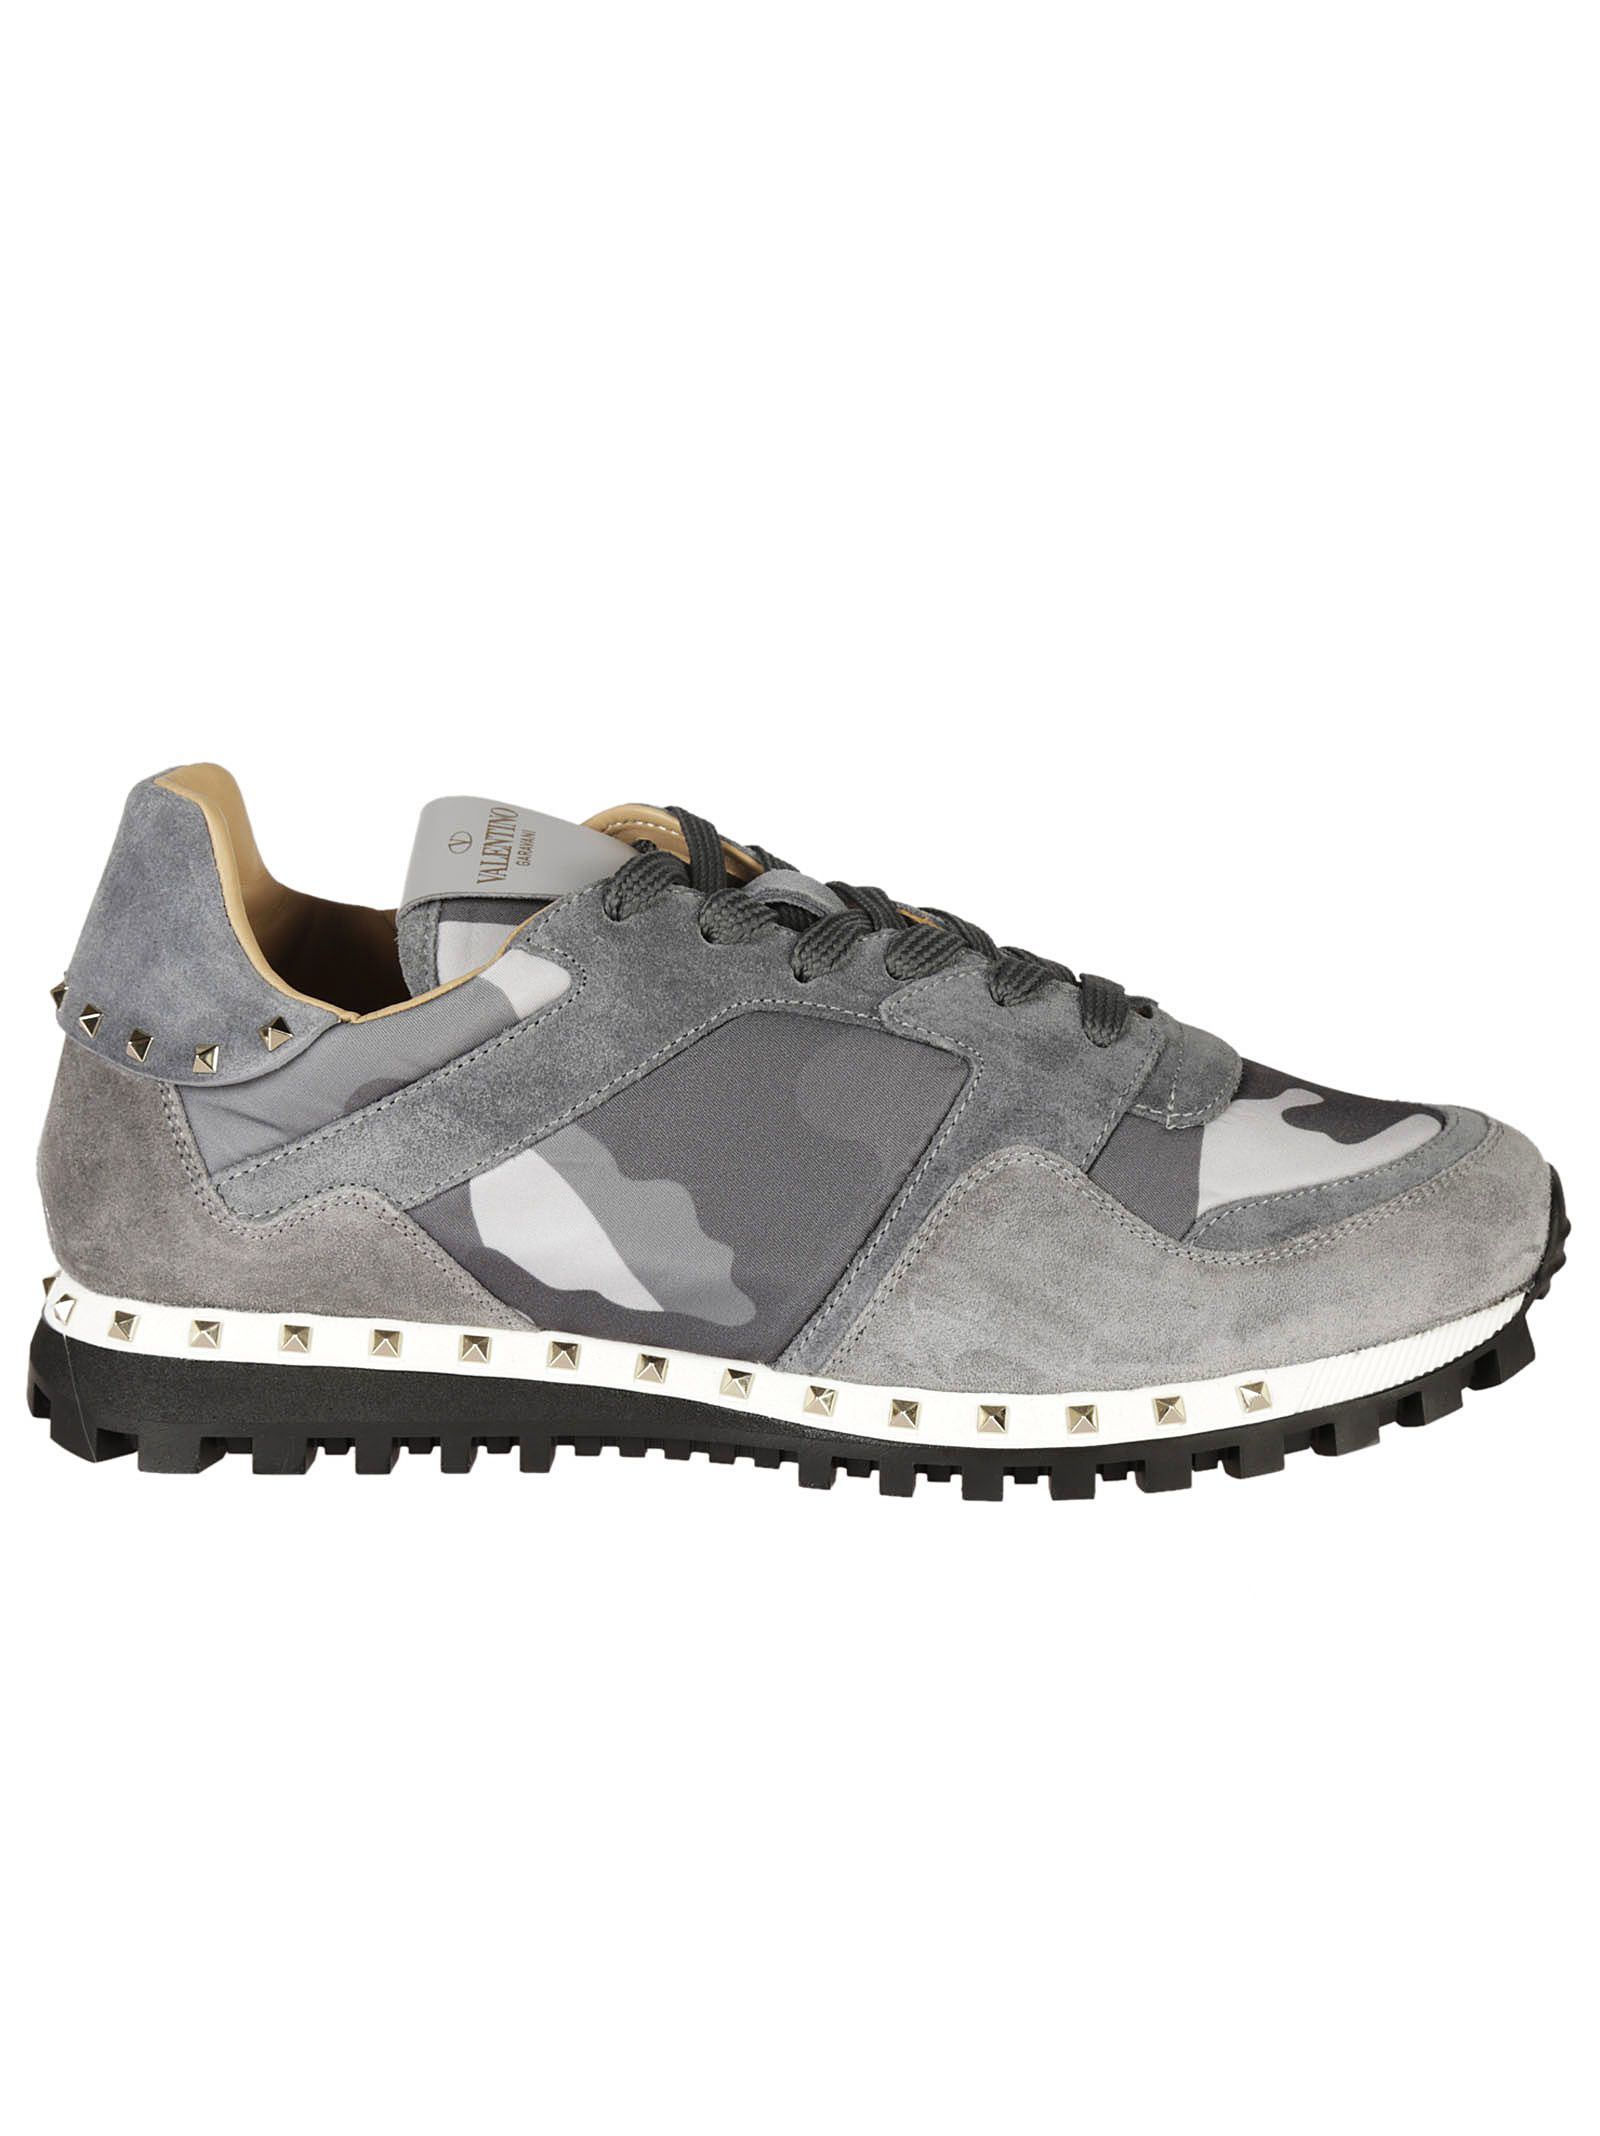 valentino garavani valentino garavani rockstud camouflage sneakers gray men 39 s sneakers. Black Bedroom Furniture Sets. Home Design Ideas